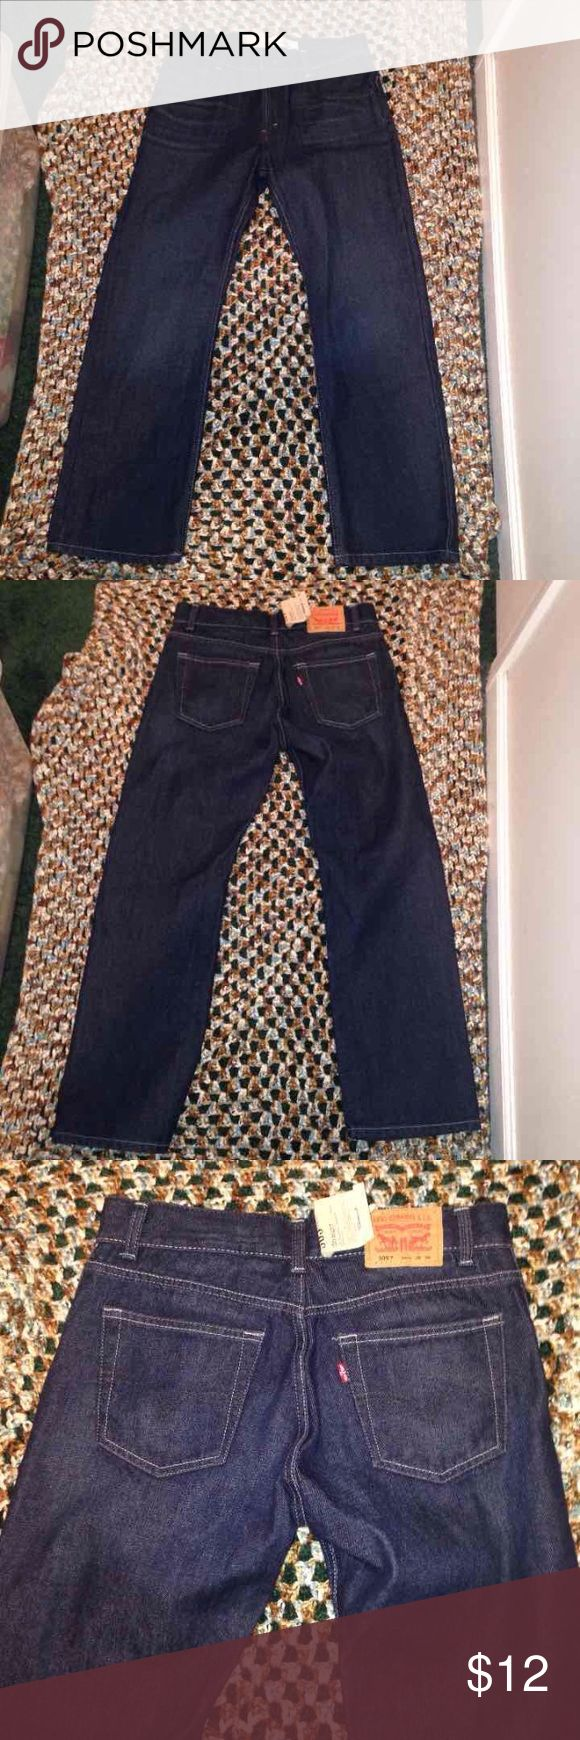 Levis 505 Sz 16 Never worn with tags Levi's Bottoms Jeans